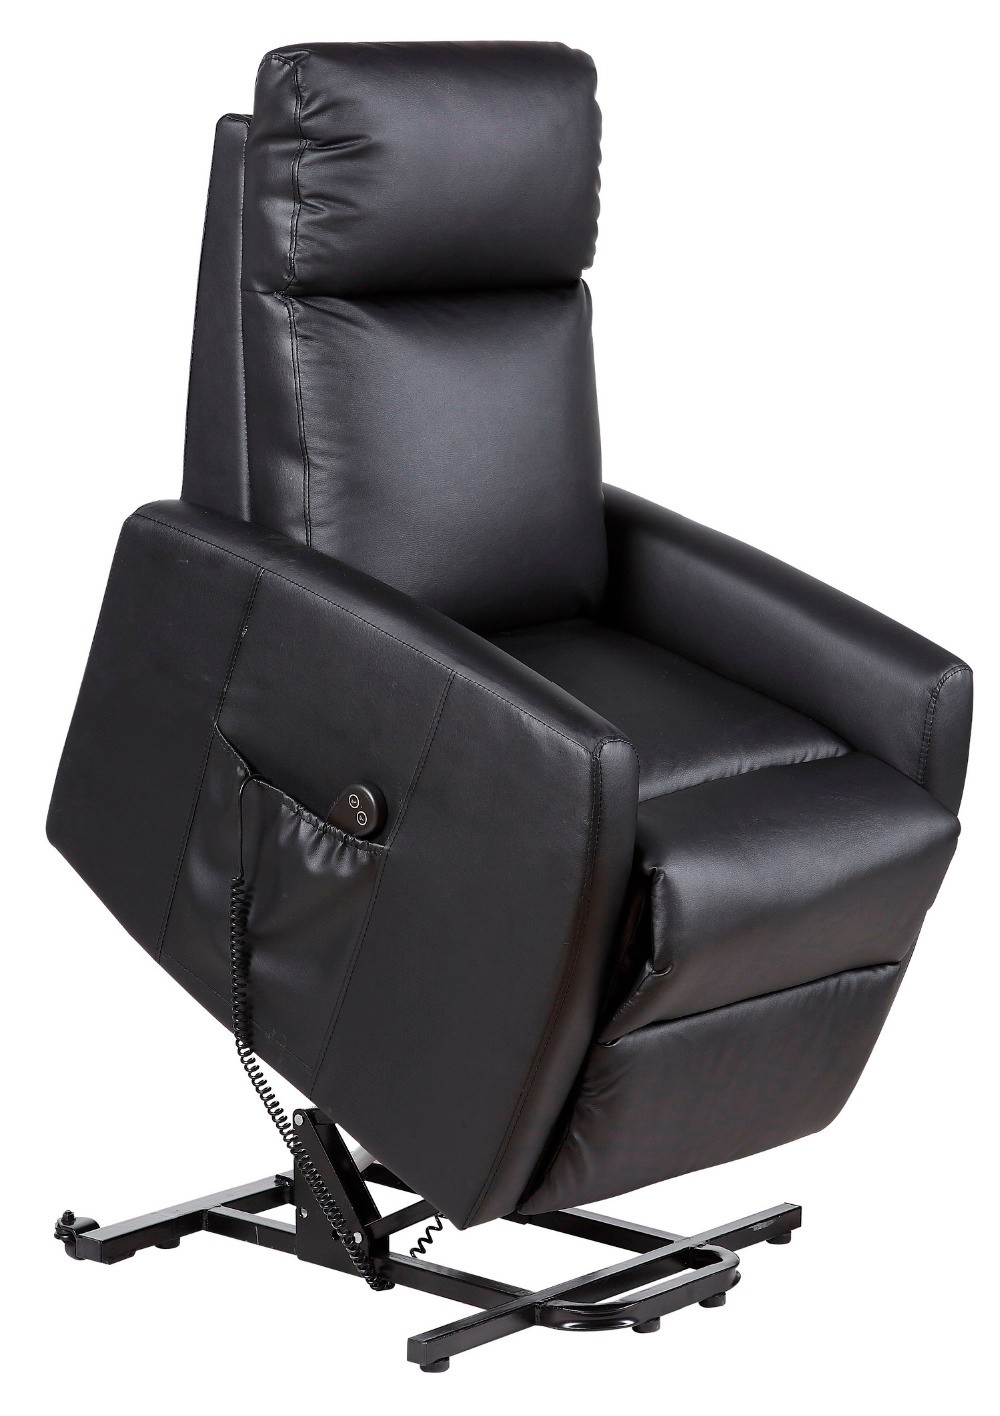 HY-8906 Customized Okin Motor Electric Massage Recliner Chair Lift Chair  sc 1 st  Alibaba & Hy-8906 Customized Okin Motor Electric Massage Recliner Chair Lift ... islam-shia.org